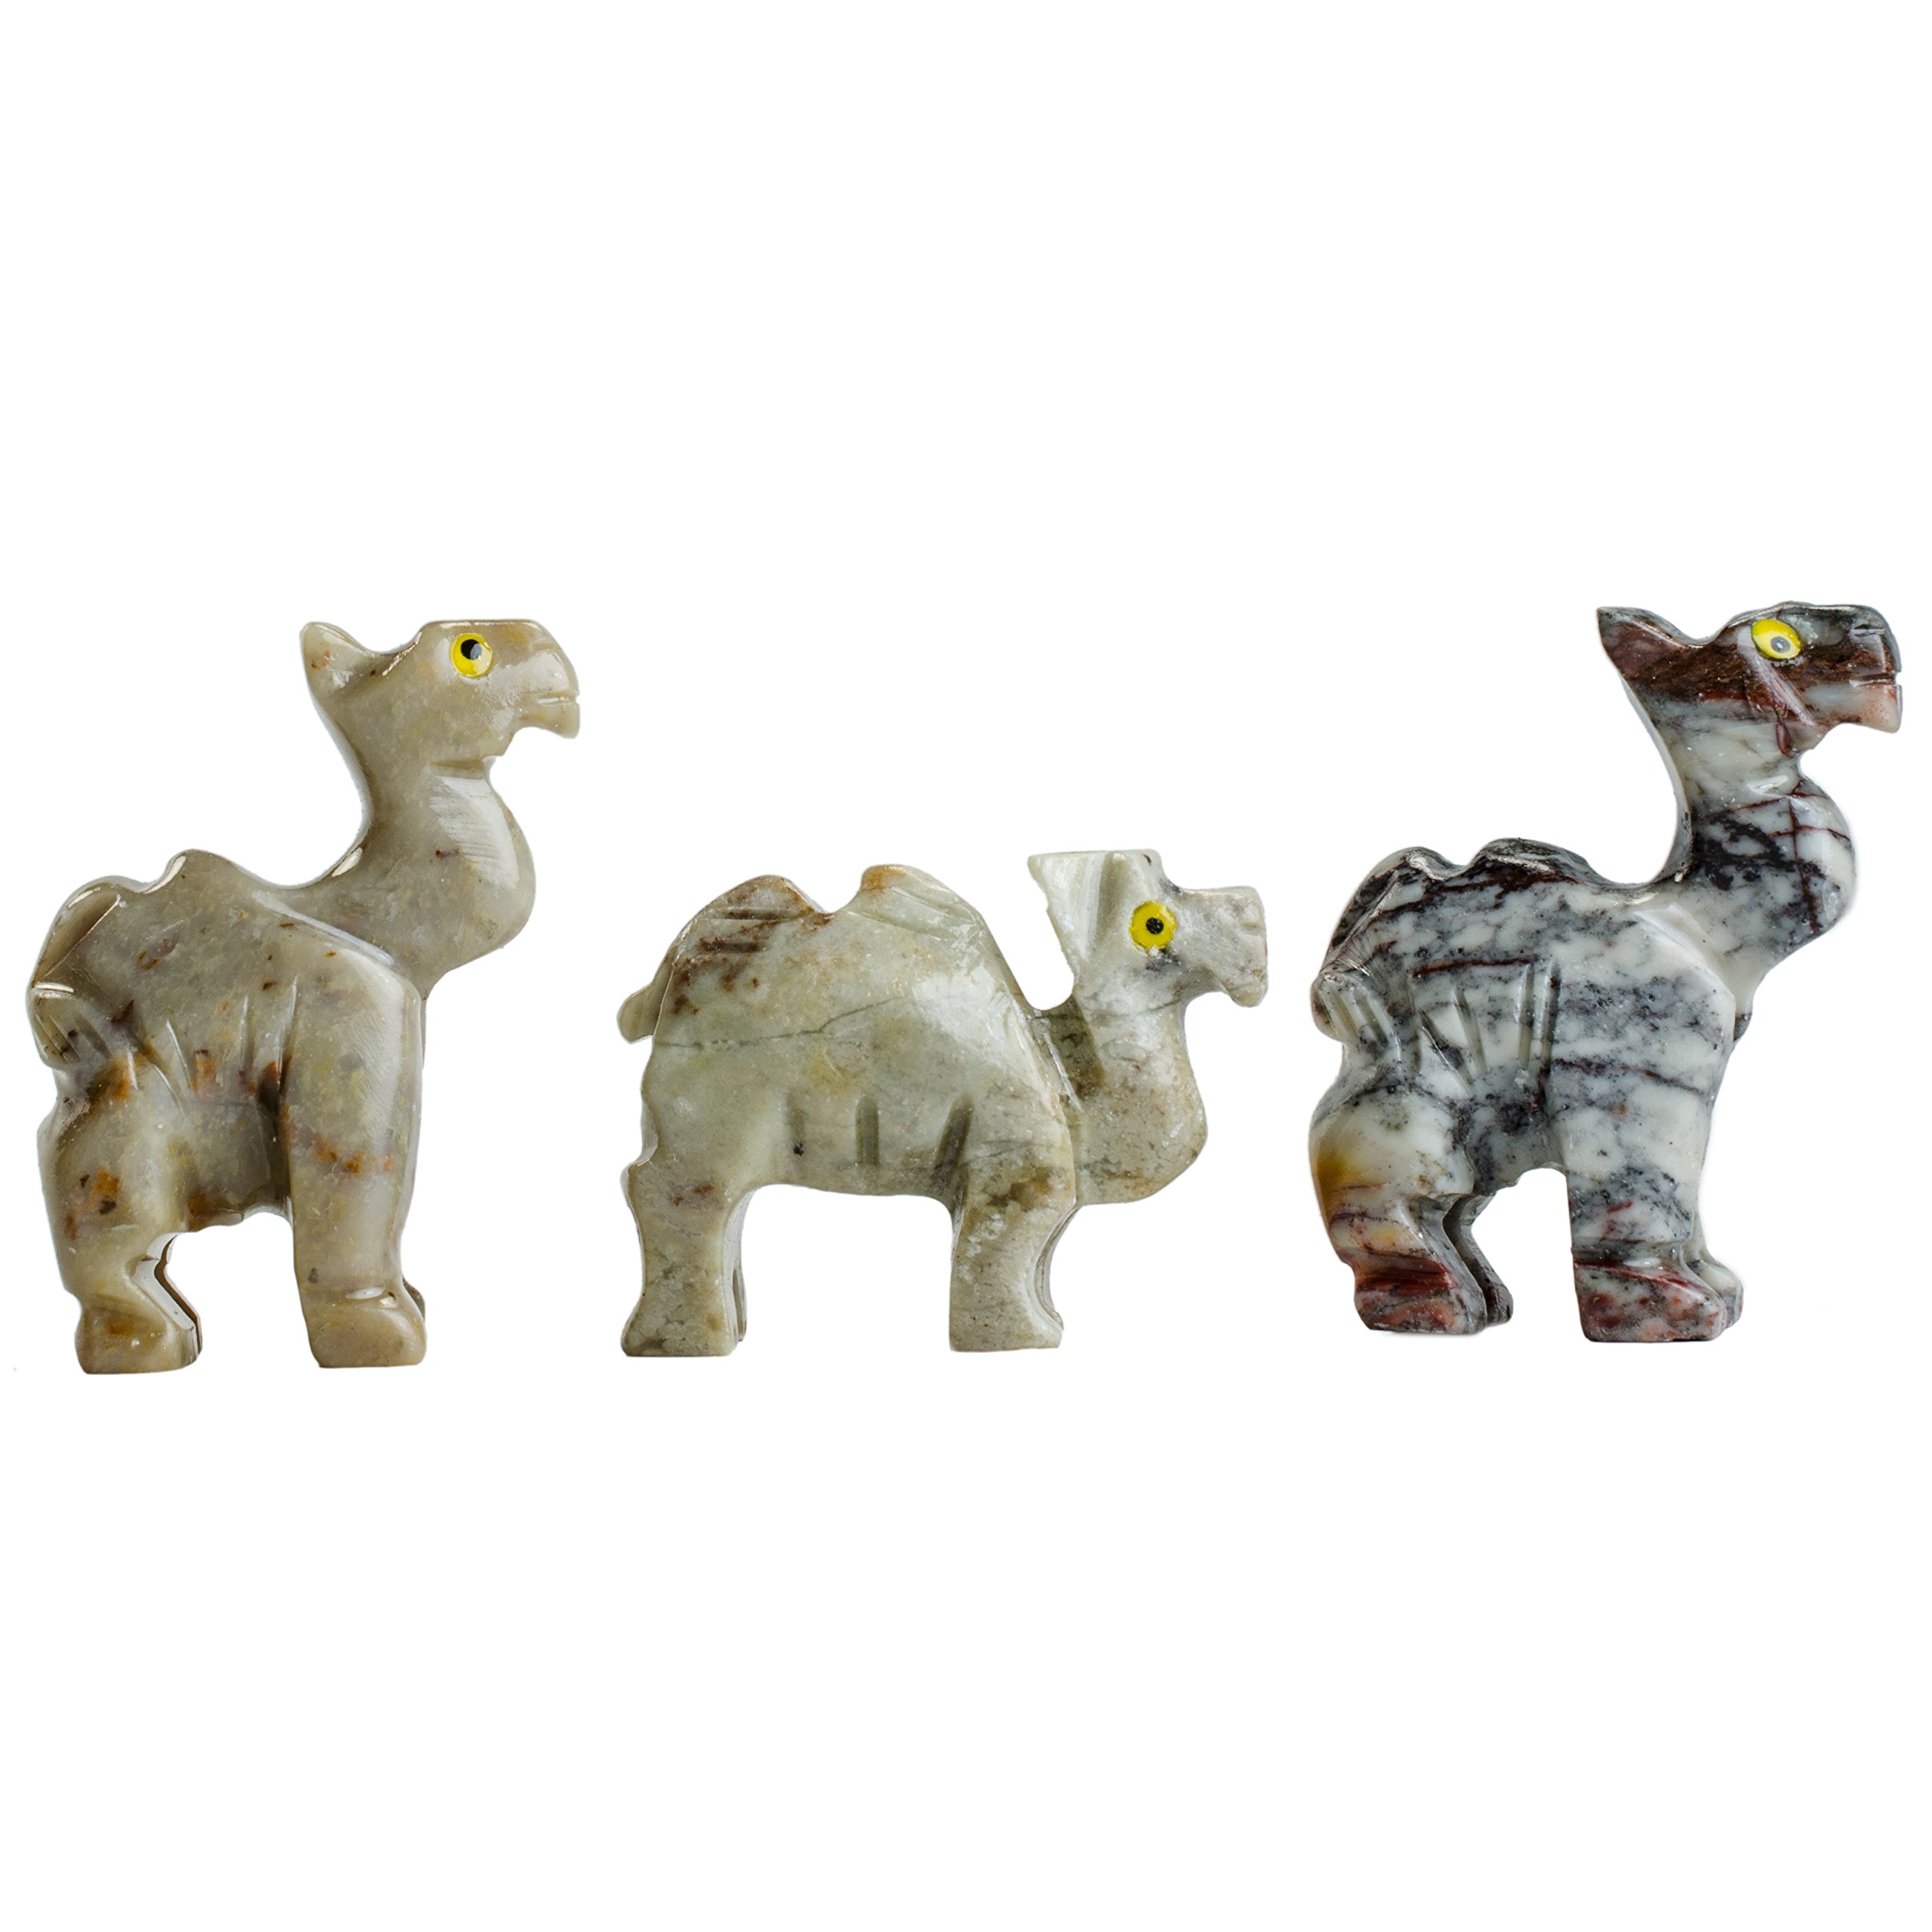 Digging Dolls : 10 pcs Artisan Camel Collectable Animal Figurine - Style 2 - Party Favors, Stocking Stuffers, Gifts, Collecting and More!